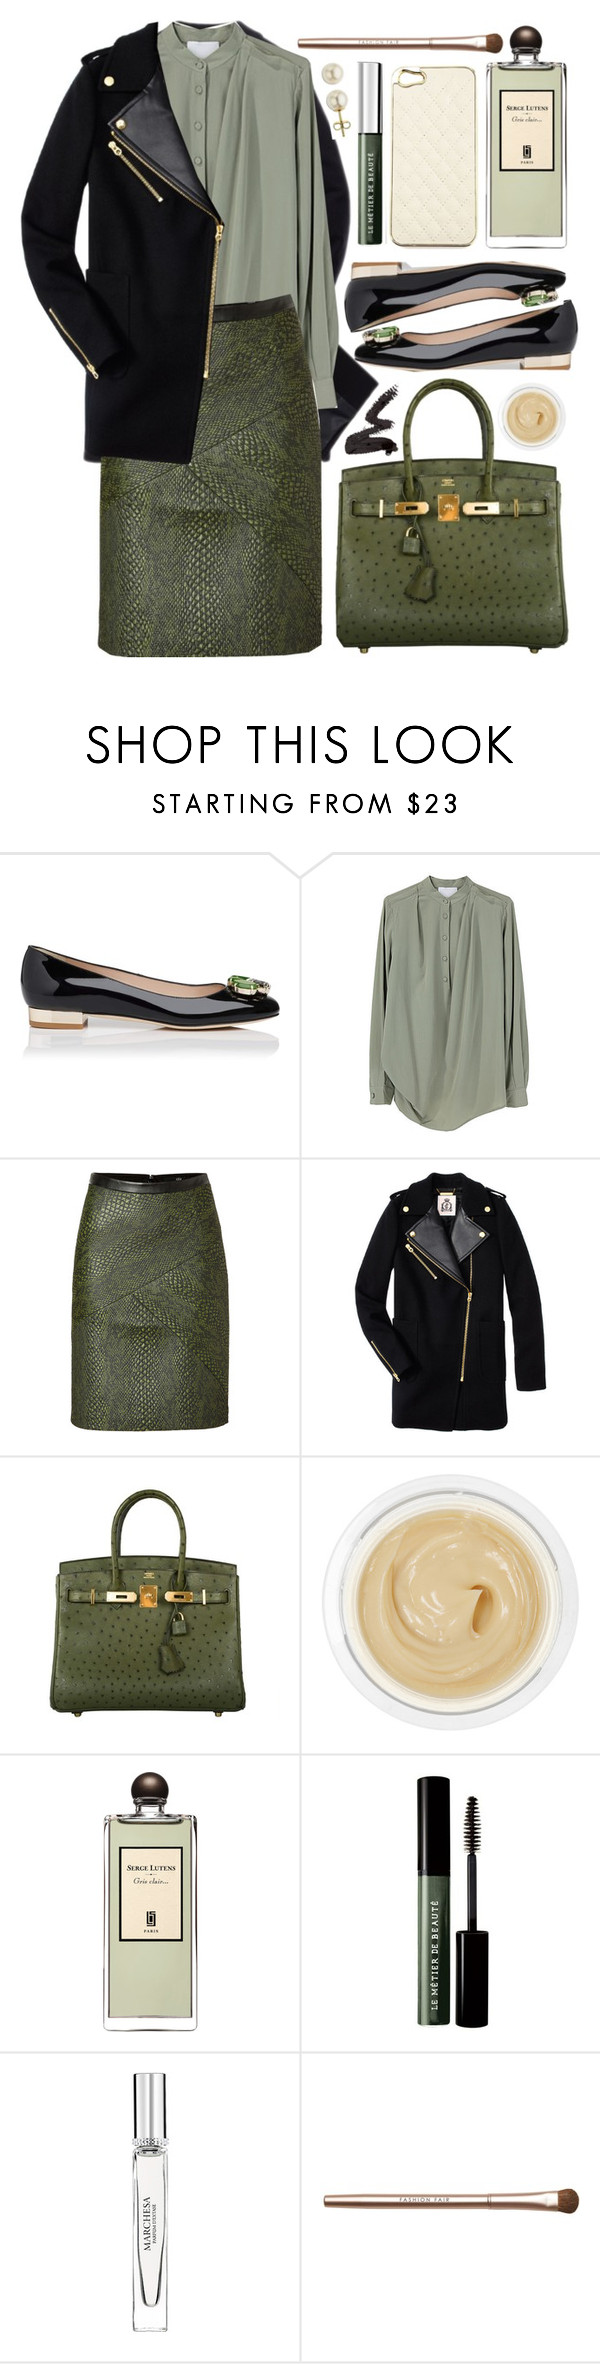 """Untitled #323"" by lagyare ❤ liked on Polyvore featuring L.K.Bennett, Superdry, 3.1 Phillip Lim, TIBI, Juicy Couture, Hermès, Chantecaille, MAKE UP FOR EVER, Serge Lutens and Le Métier de Beauté"